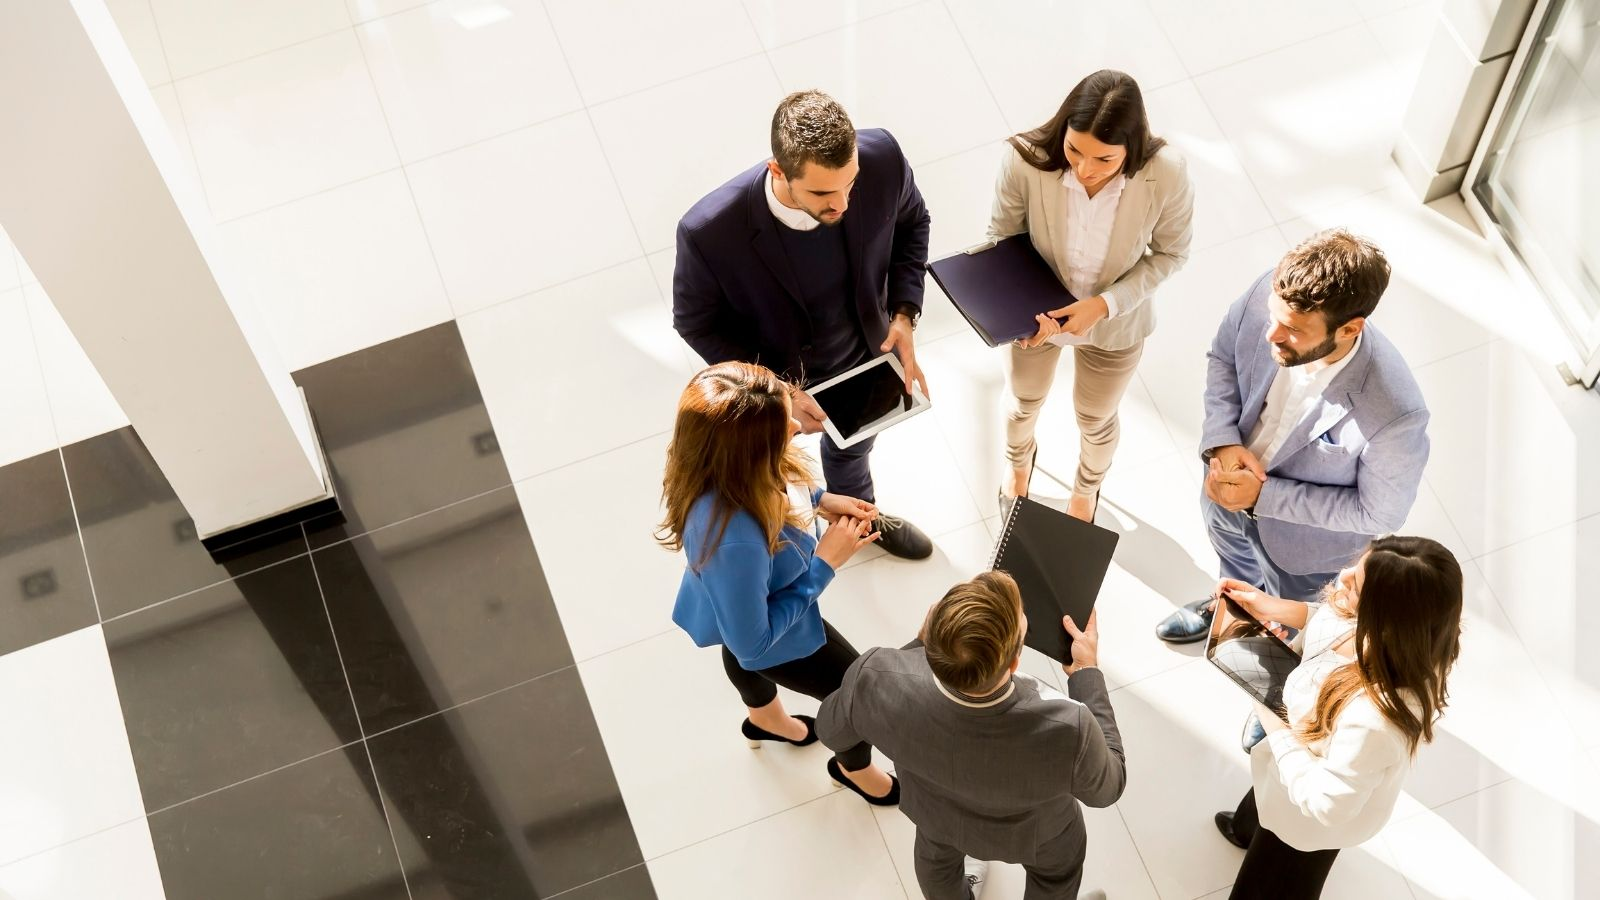 A group of business professionals standing in a meeting